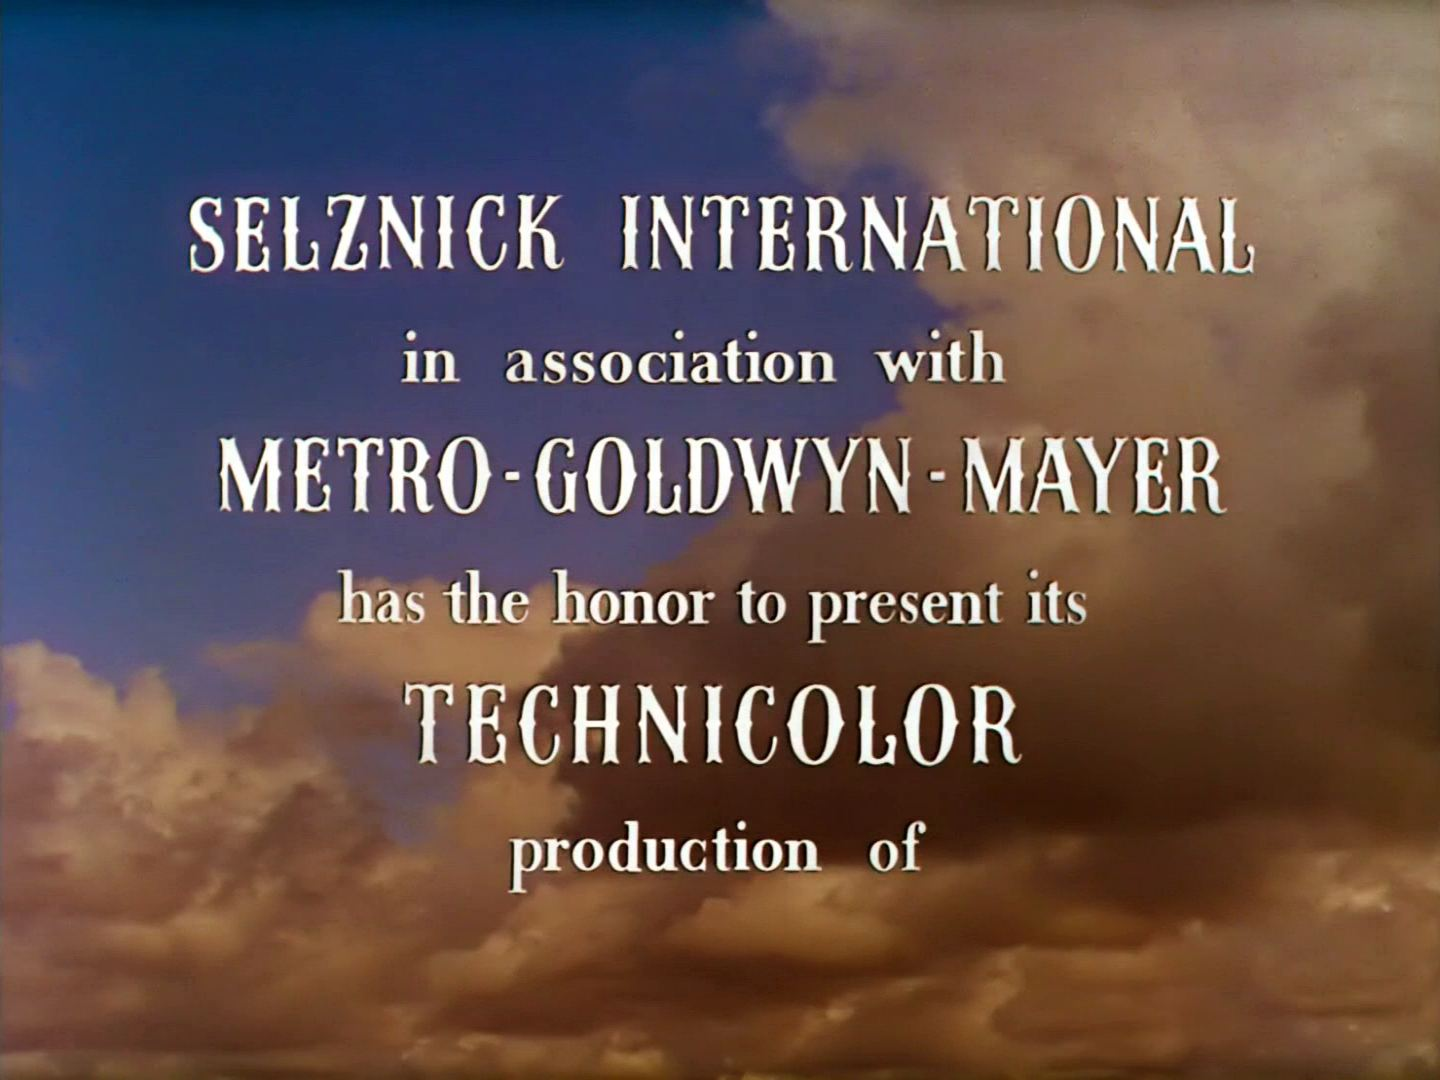 Main title from Gone with the Wind (1939) (2). Selznick International in association with Metro-Goldwyn-Mayer has the honor to present its Technicolour production of